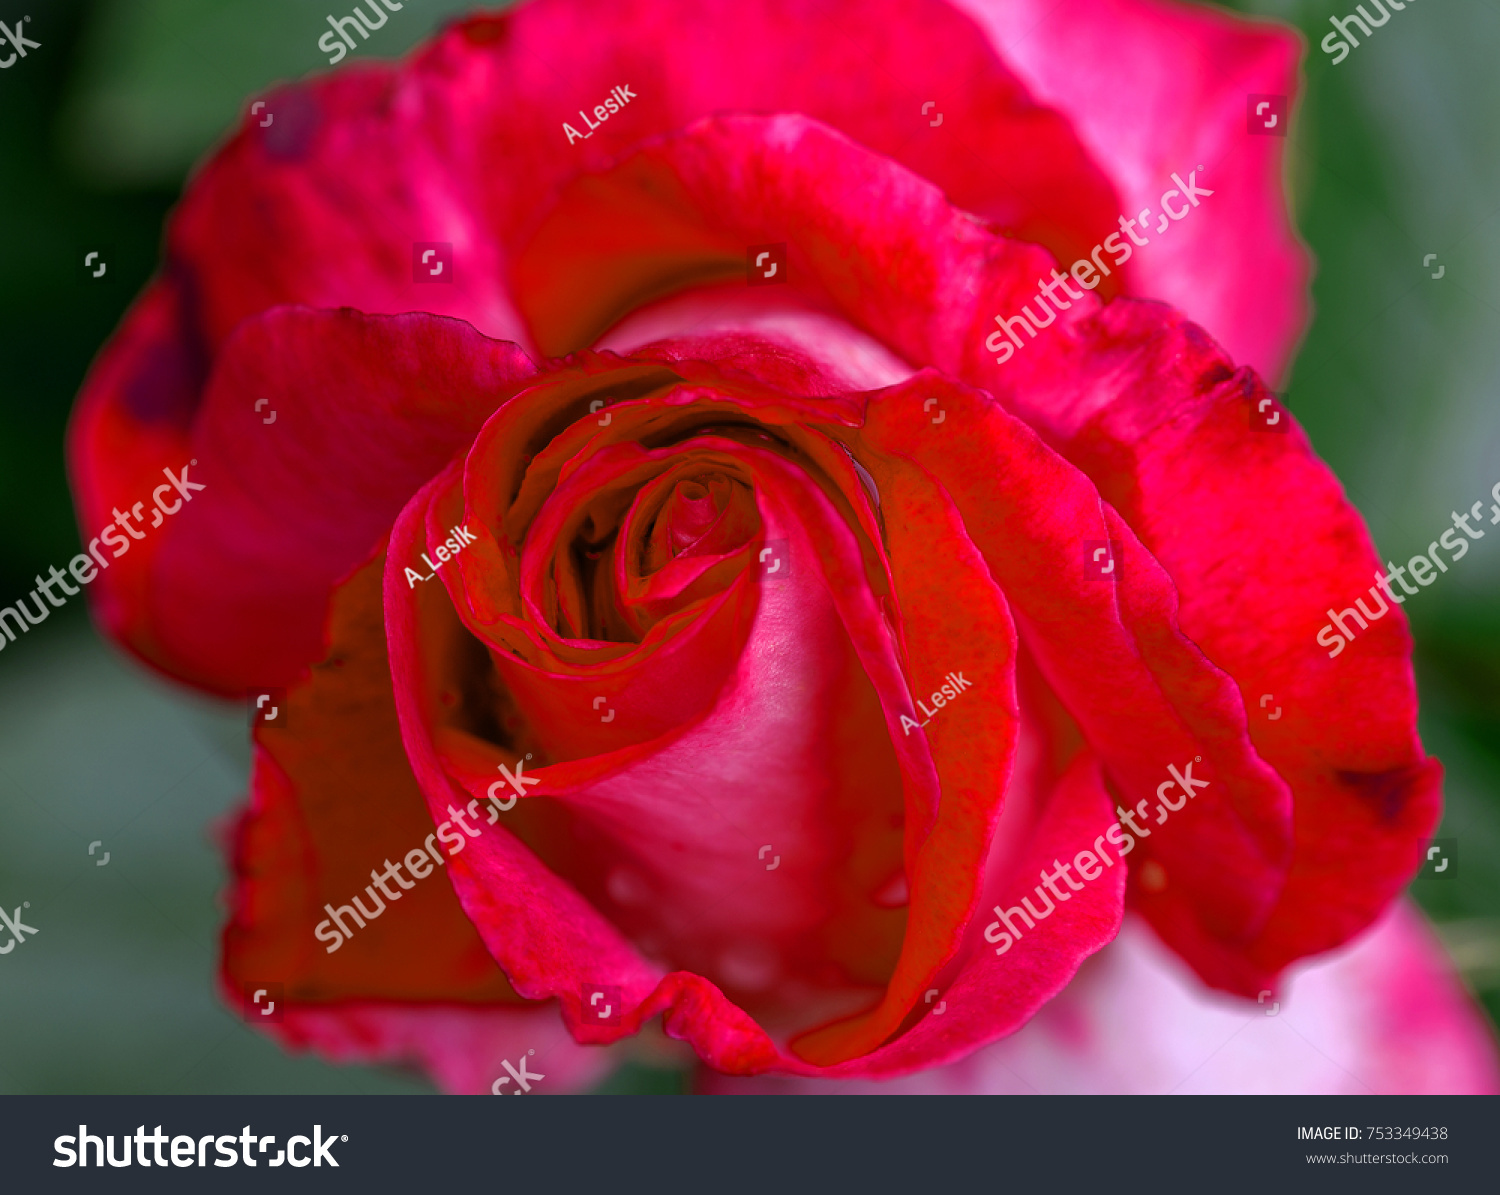 Beautiful flower of a red rose a background of a border rose as a id 753349438 izmirmasajfo